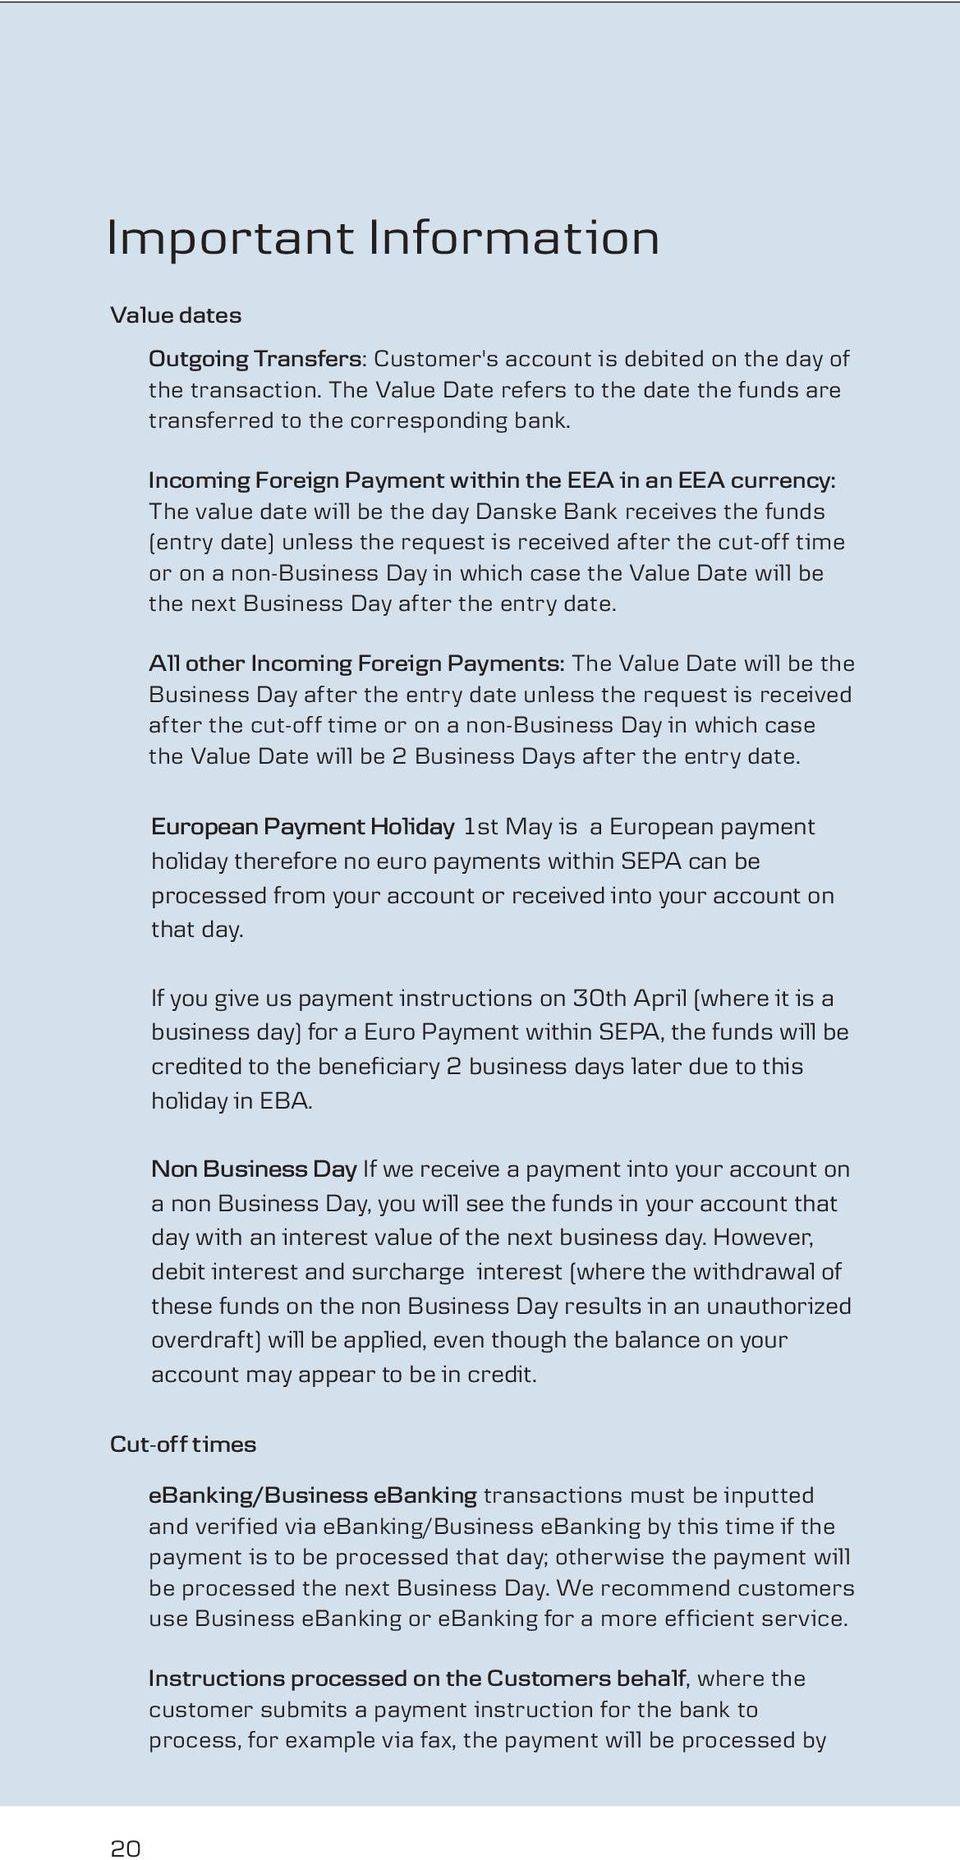 Incoming Foreign Payment within the EEA in an EEA currency: The value date will be the day Danske Bank receives the funds (entry date) unless the request is received after the cut-off time or on a